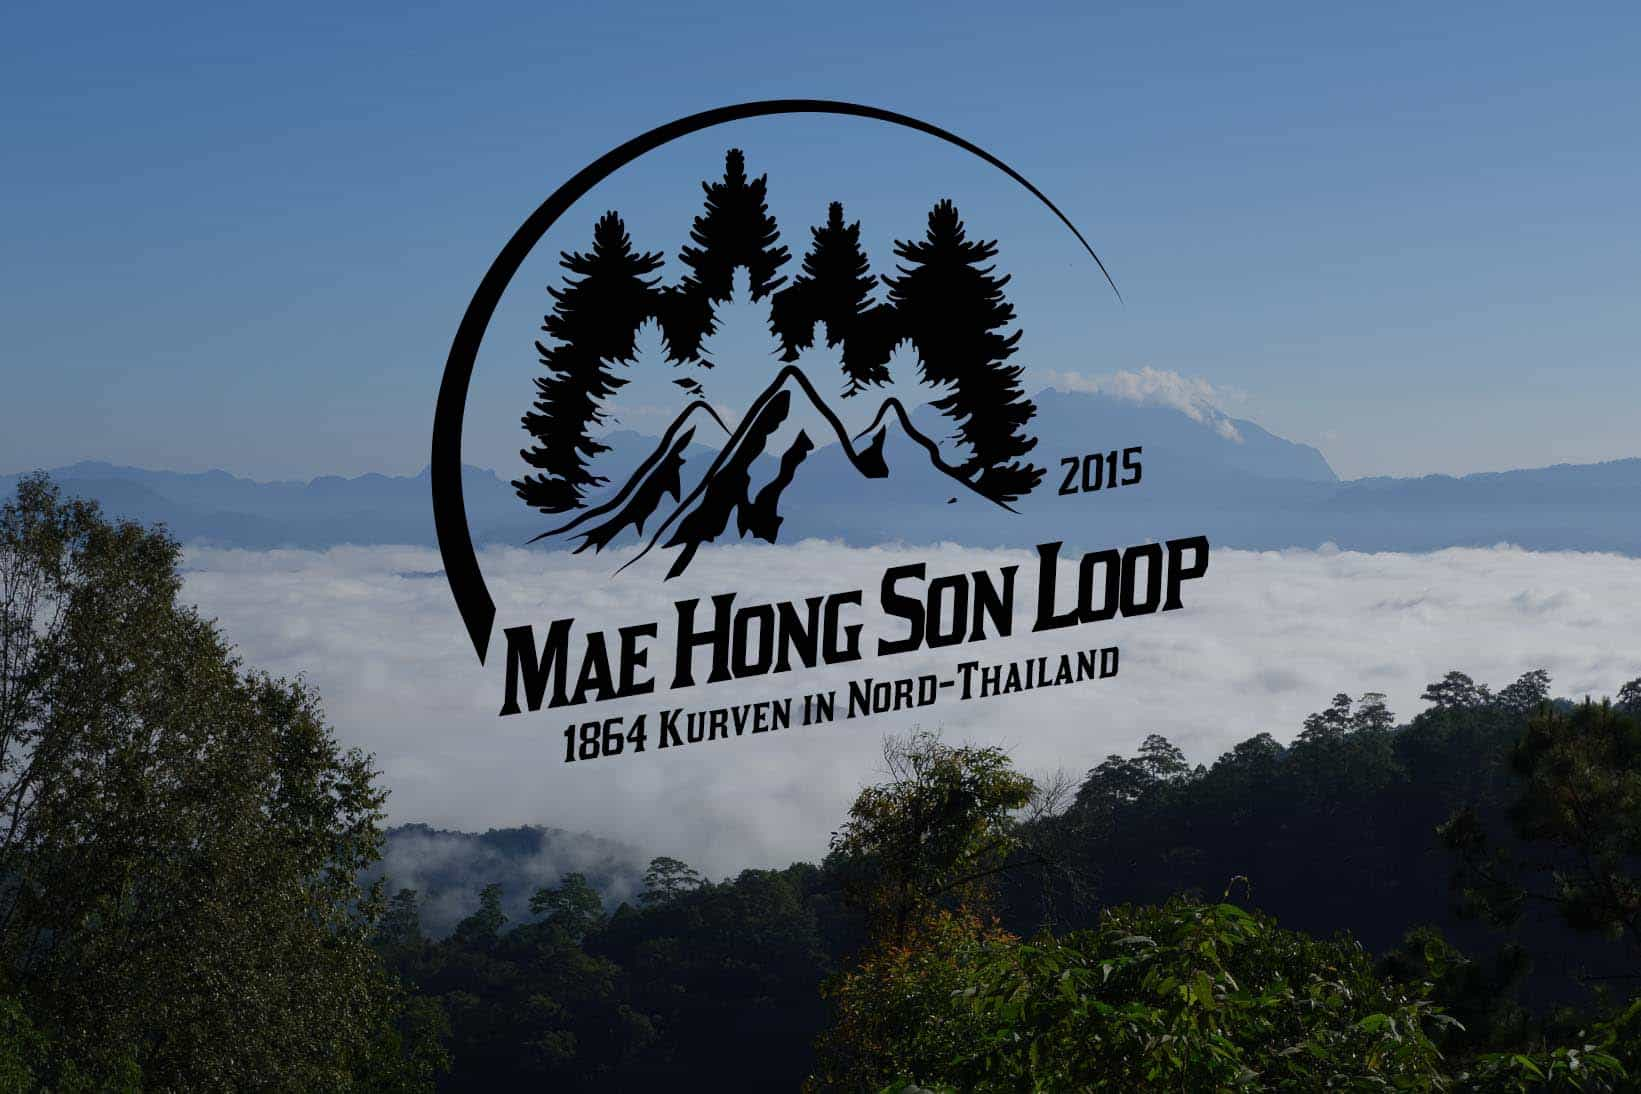 Mae Hong Son Loop – 1864 Kurven